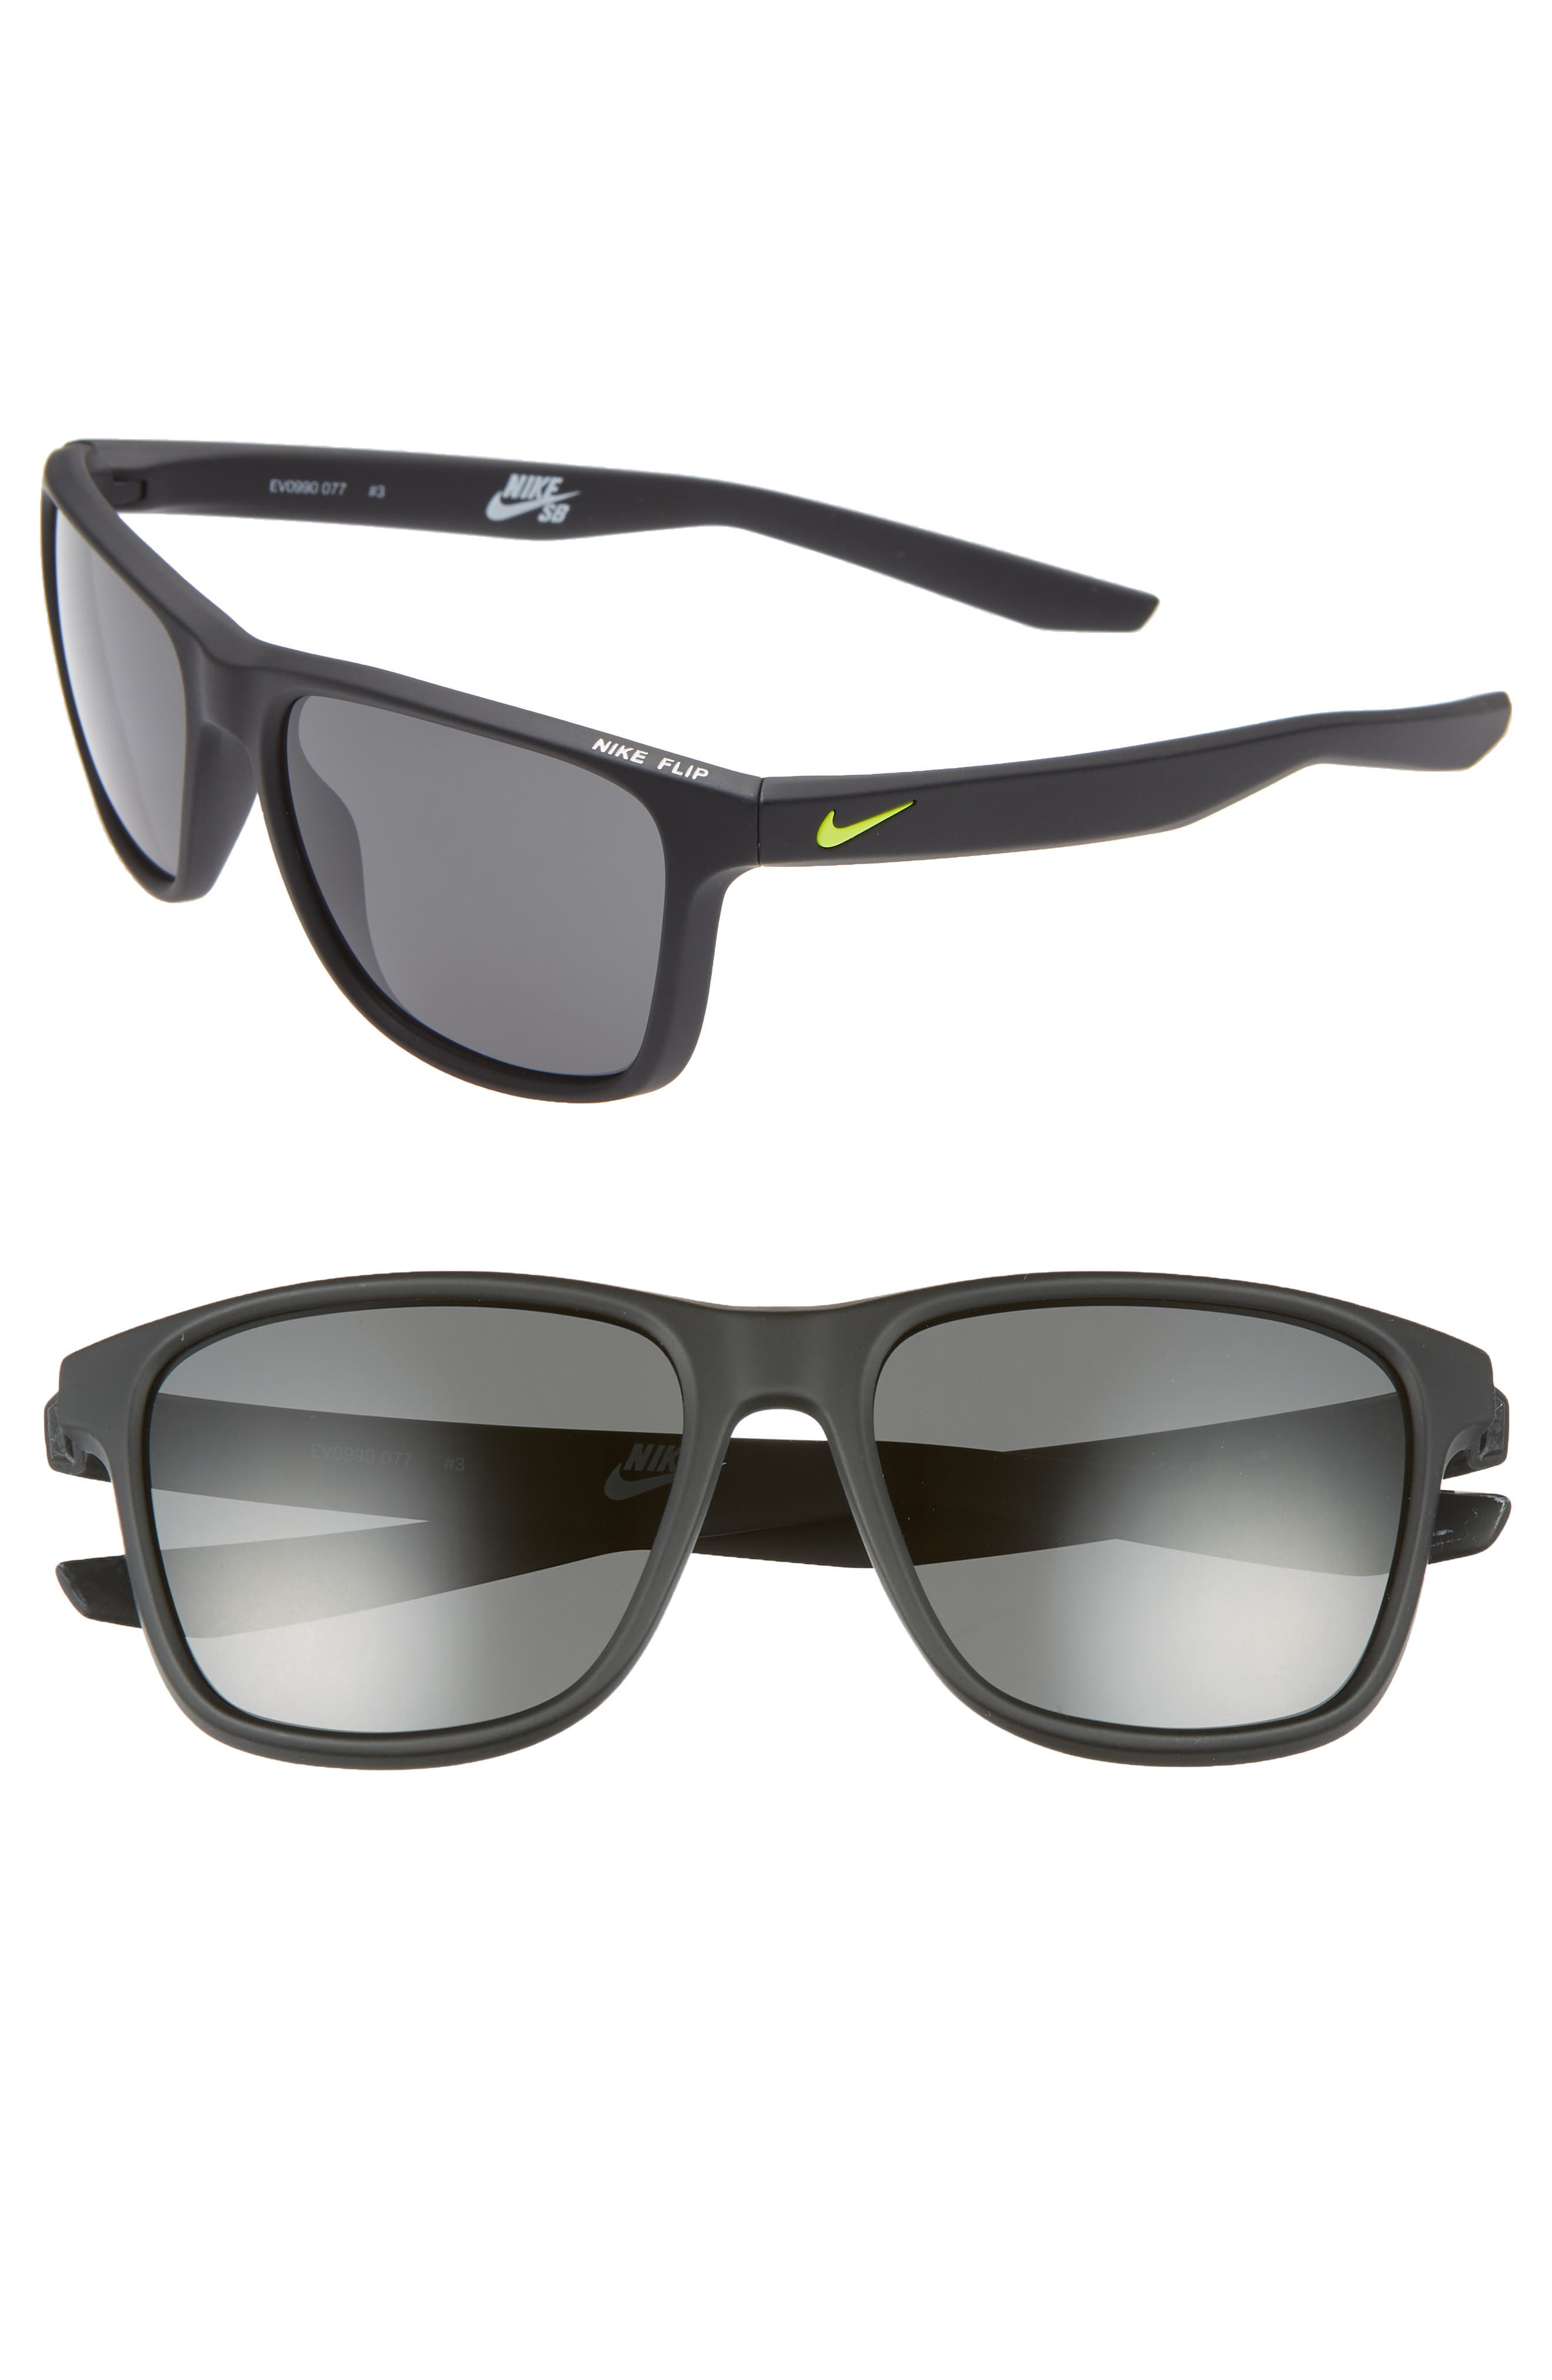 Nike Flip 5m Mirrored Sunglasses - Matte Black/ Grey